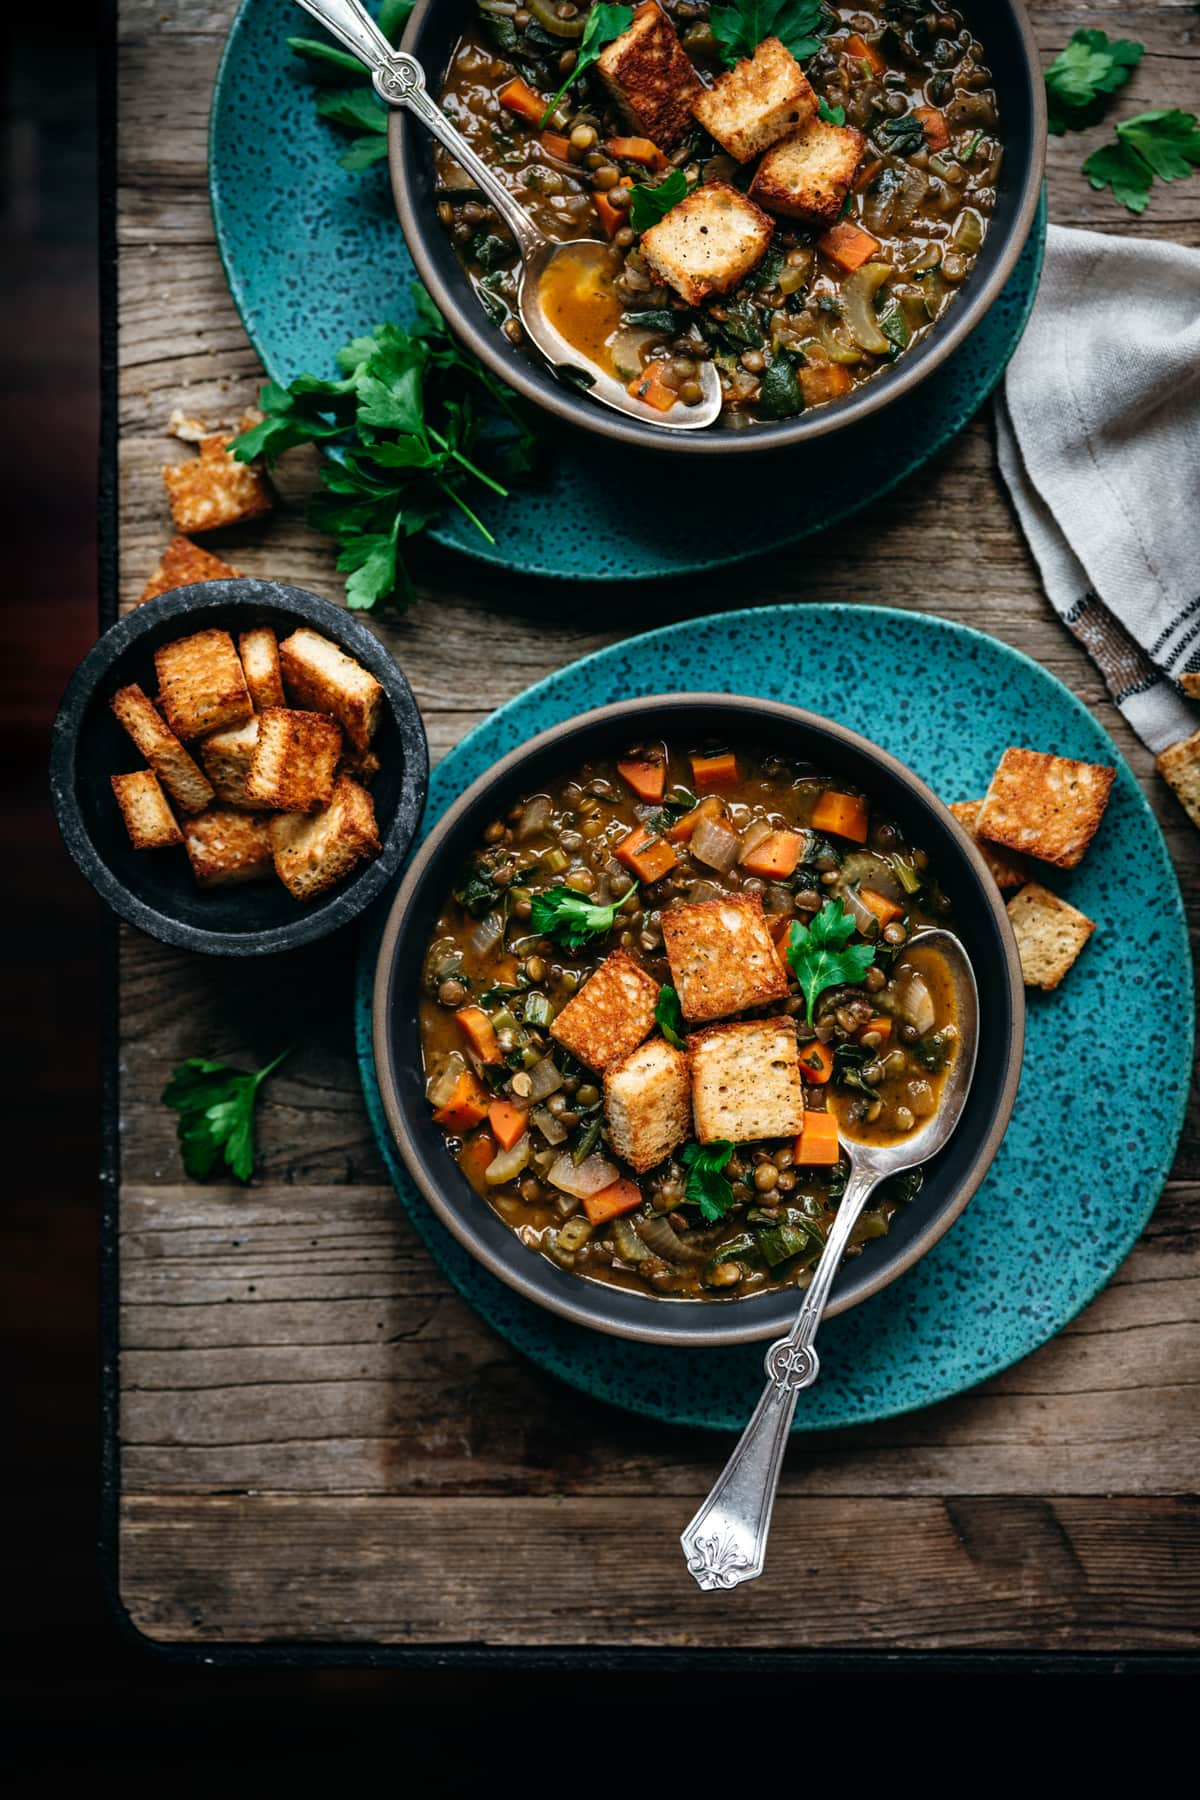 overhead view of vegan lentil stew with garlic croutons on wood table